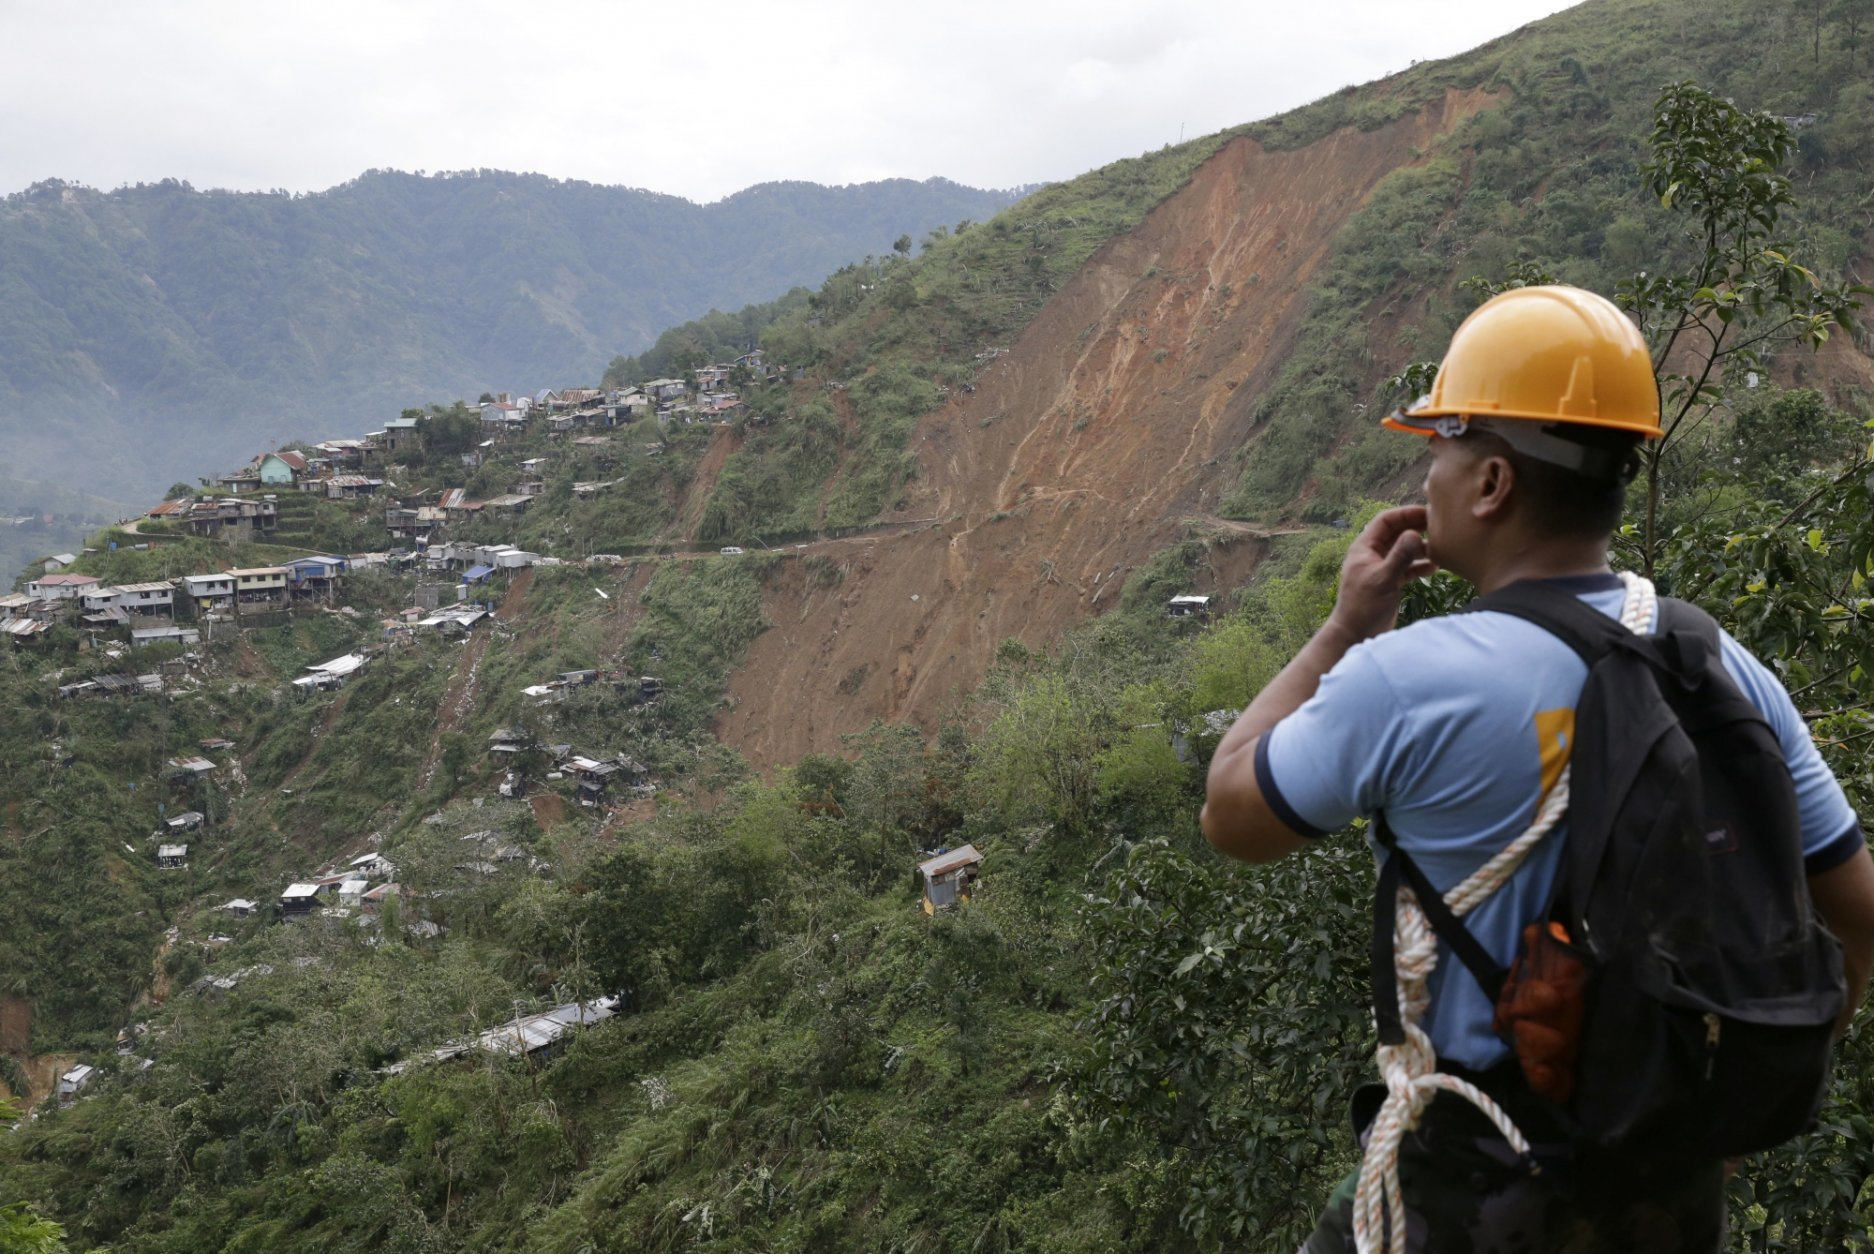 A rescuer looks at the site of a landslide where victims are believed to have been buried after Typhoon Mangkhut barreled across Itogon, Benguet province, northern Philippines, Monday, Sept. 17, 2018. Itogon Mayor Victorio Palangdan said that at the height of the typhoon's onslaught Saturday afternoon, dozens of people, mostly miners and their families, rushed into an old three-story building in the village of Ucab. The building, a former mining bunkhouse that had been transformed into a chapel, was obliterated when part of a mountain slope collapsed. (AP Photo/Aaron Favila)